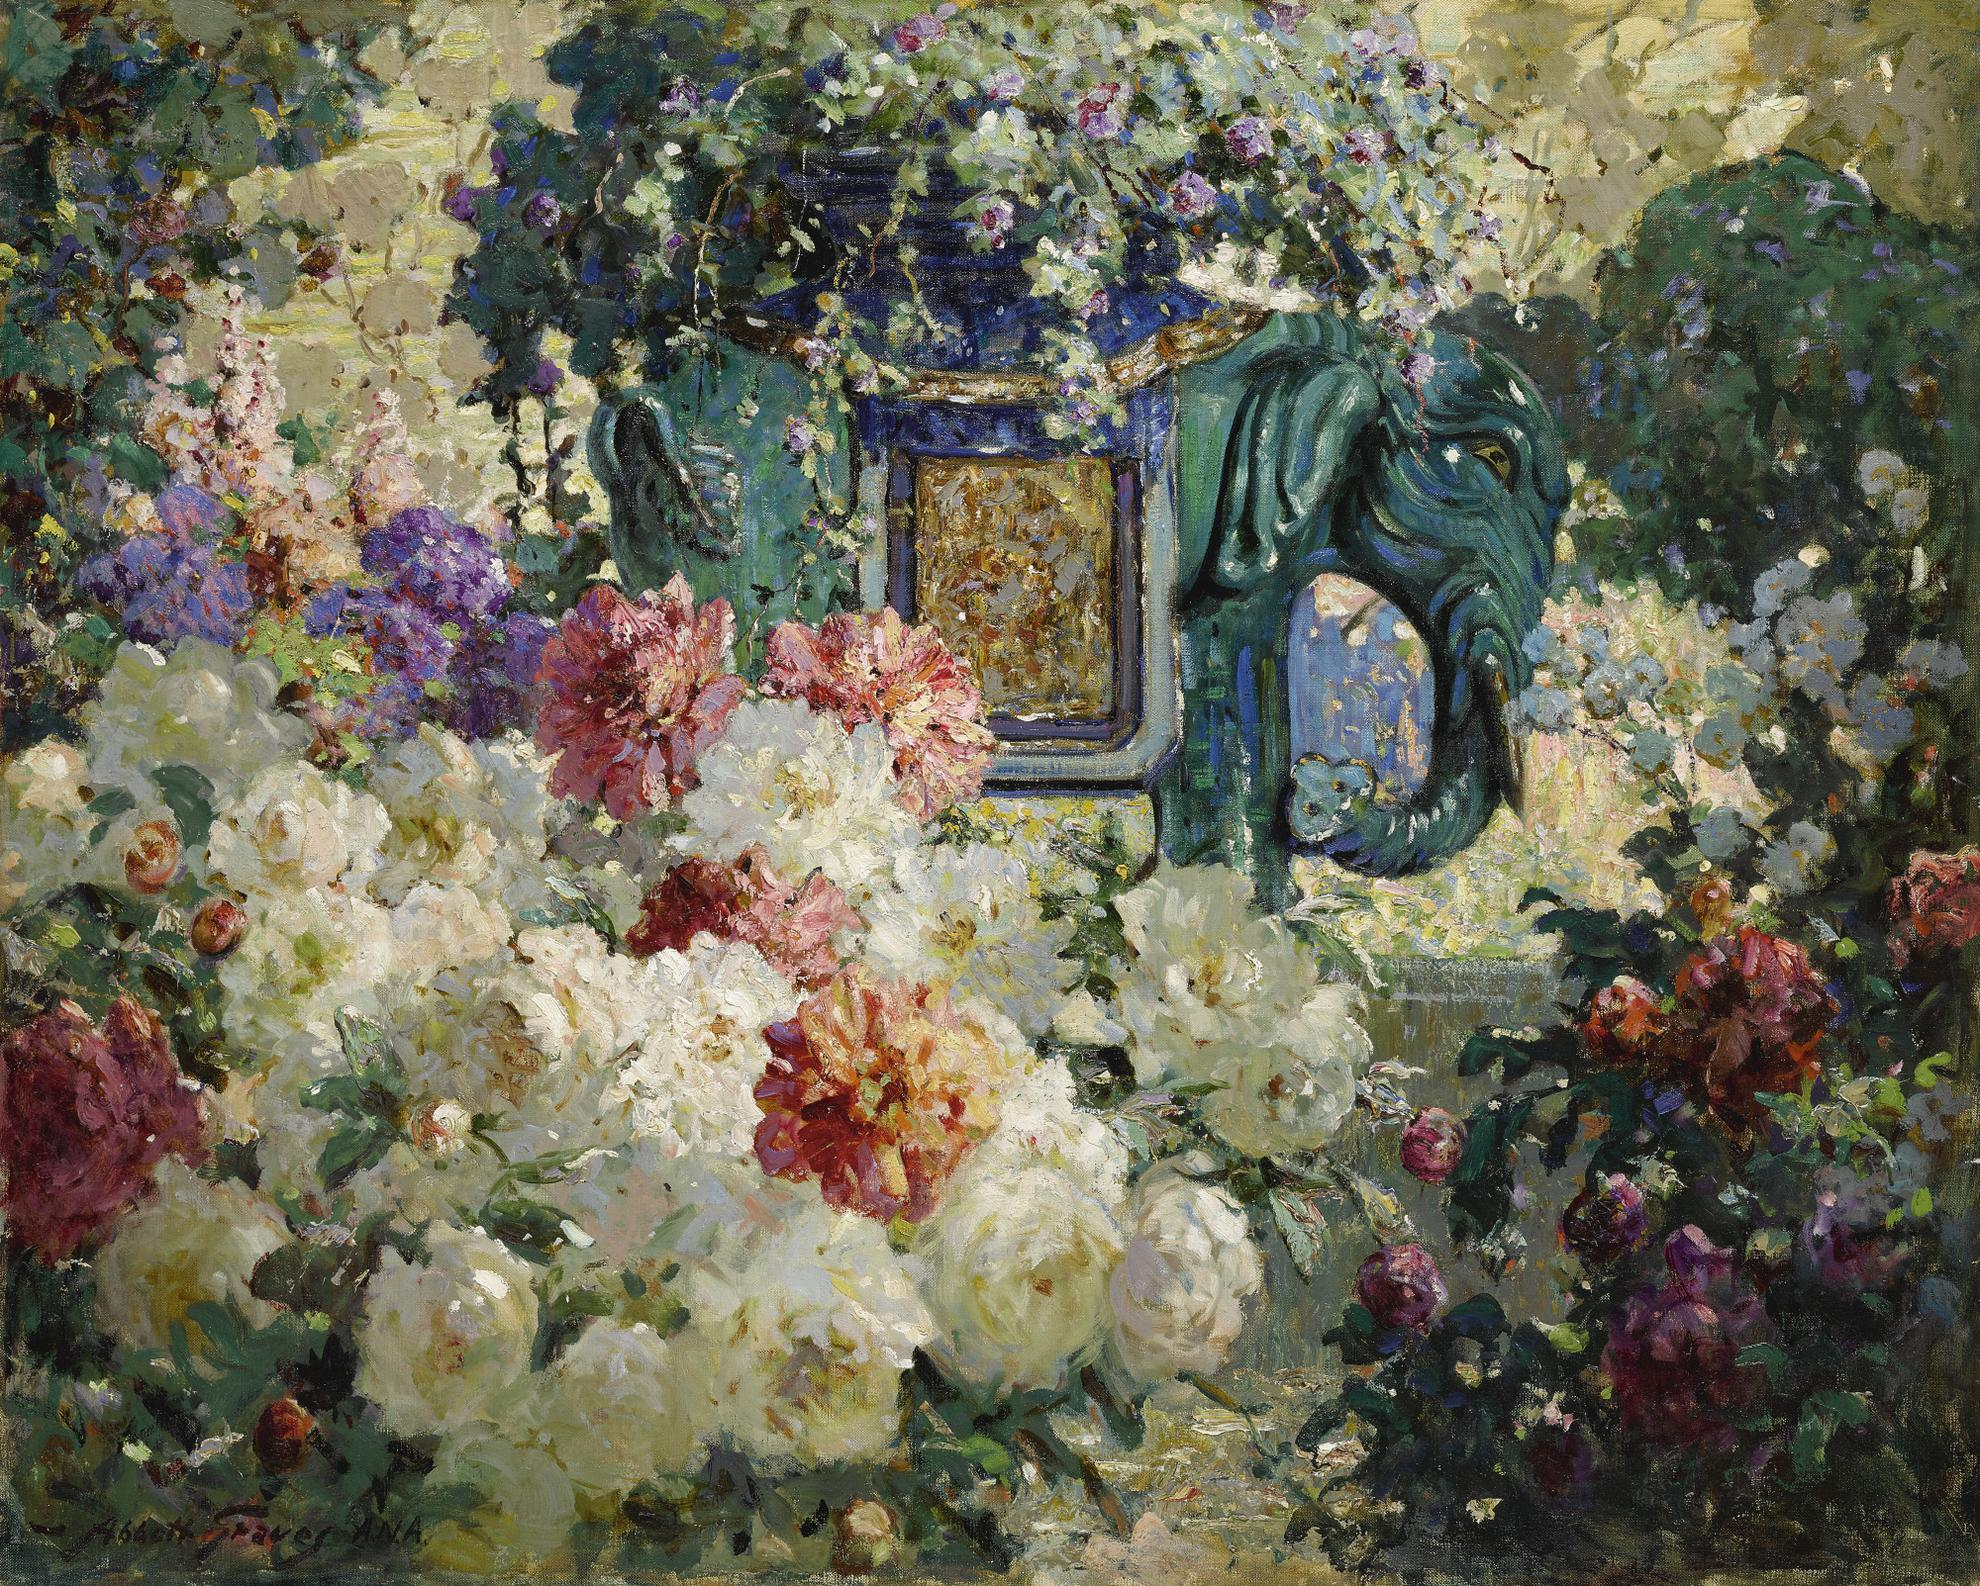 Abbott Fuller Graves - In My Wifes Garden-1930